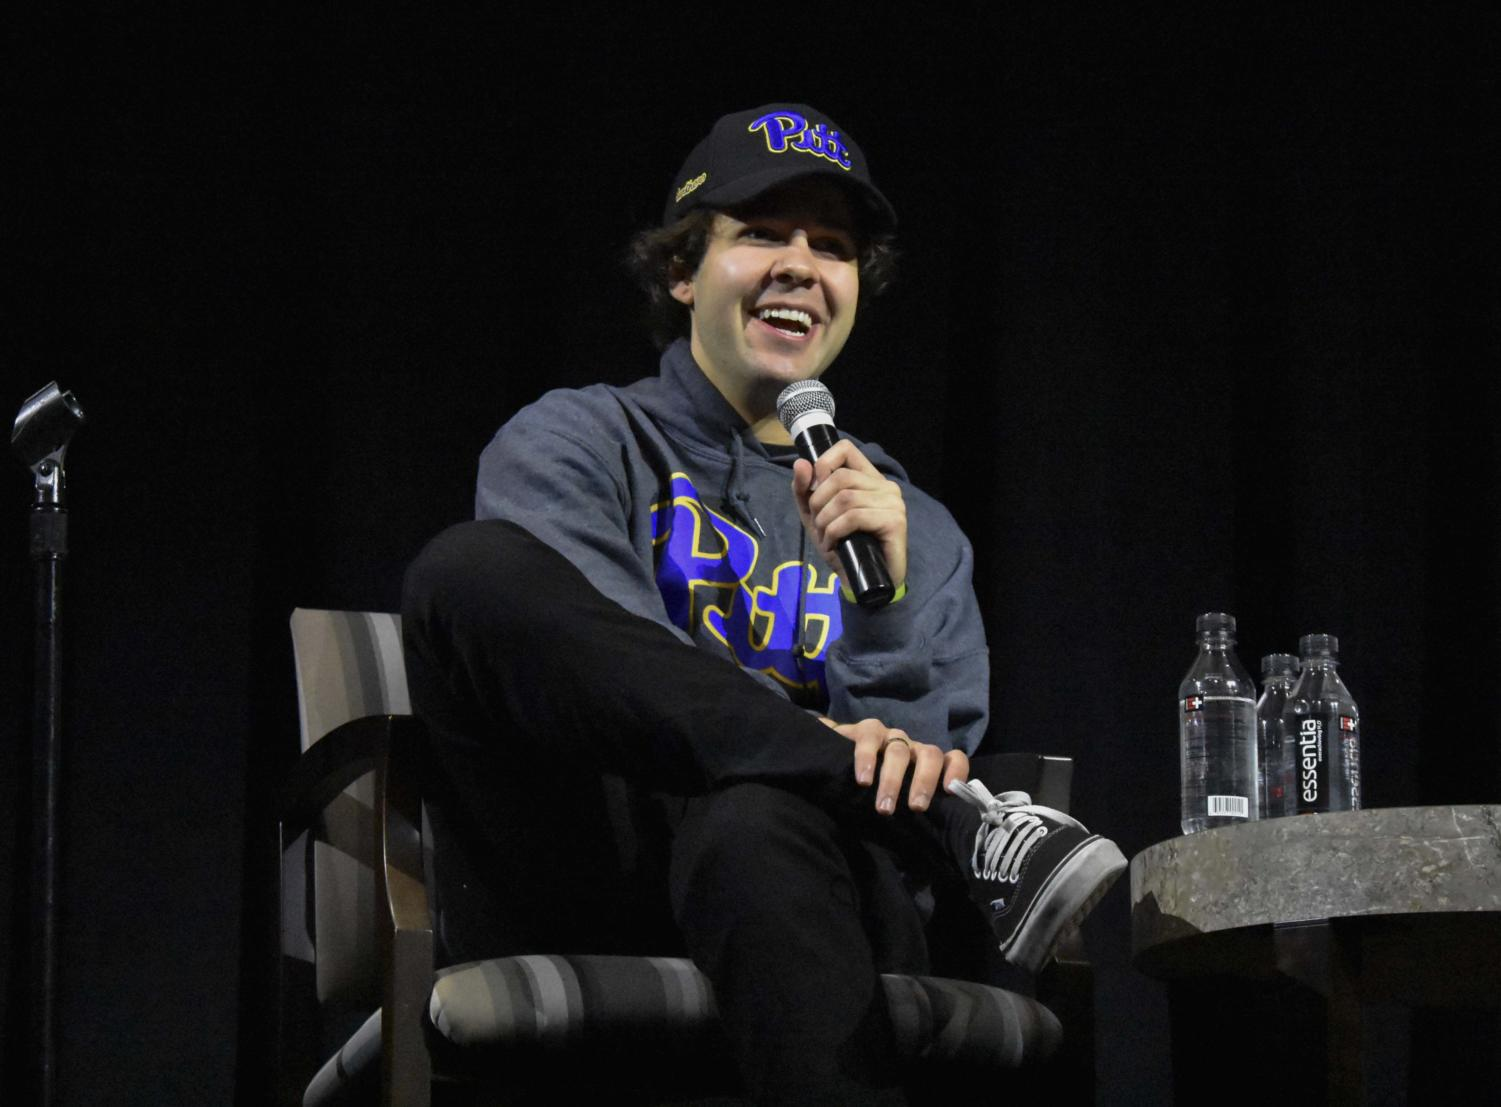 Pitt Program Council hosted YouTube personality and vlogger David Dobrik Tuesday night in the William Pitt Union Assembly Room.